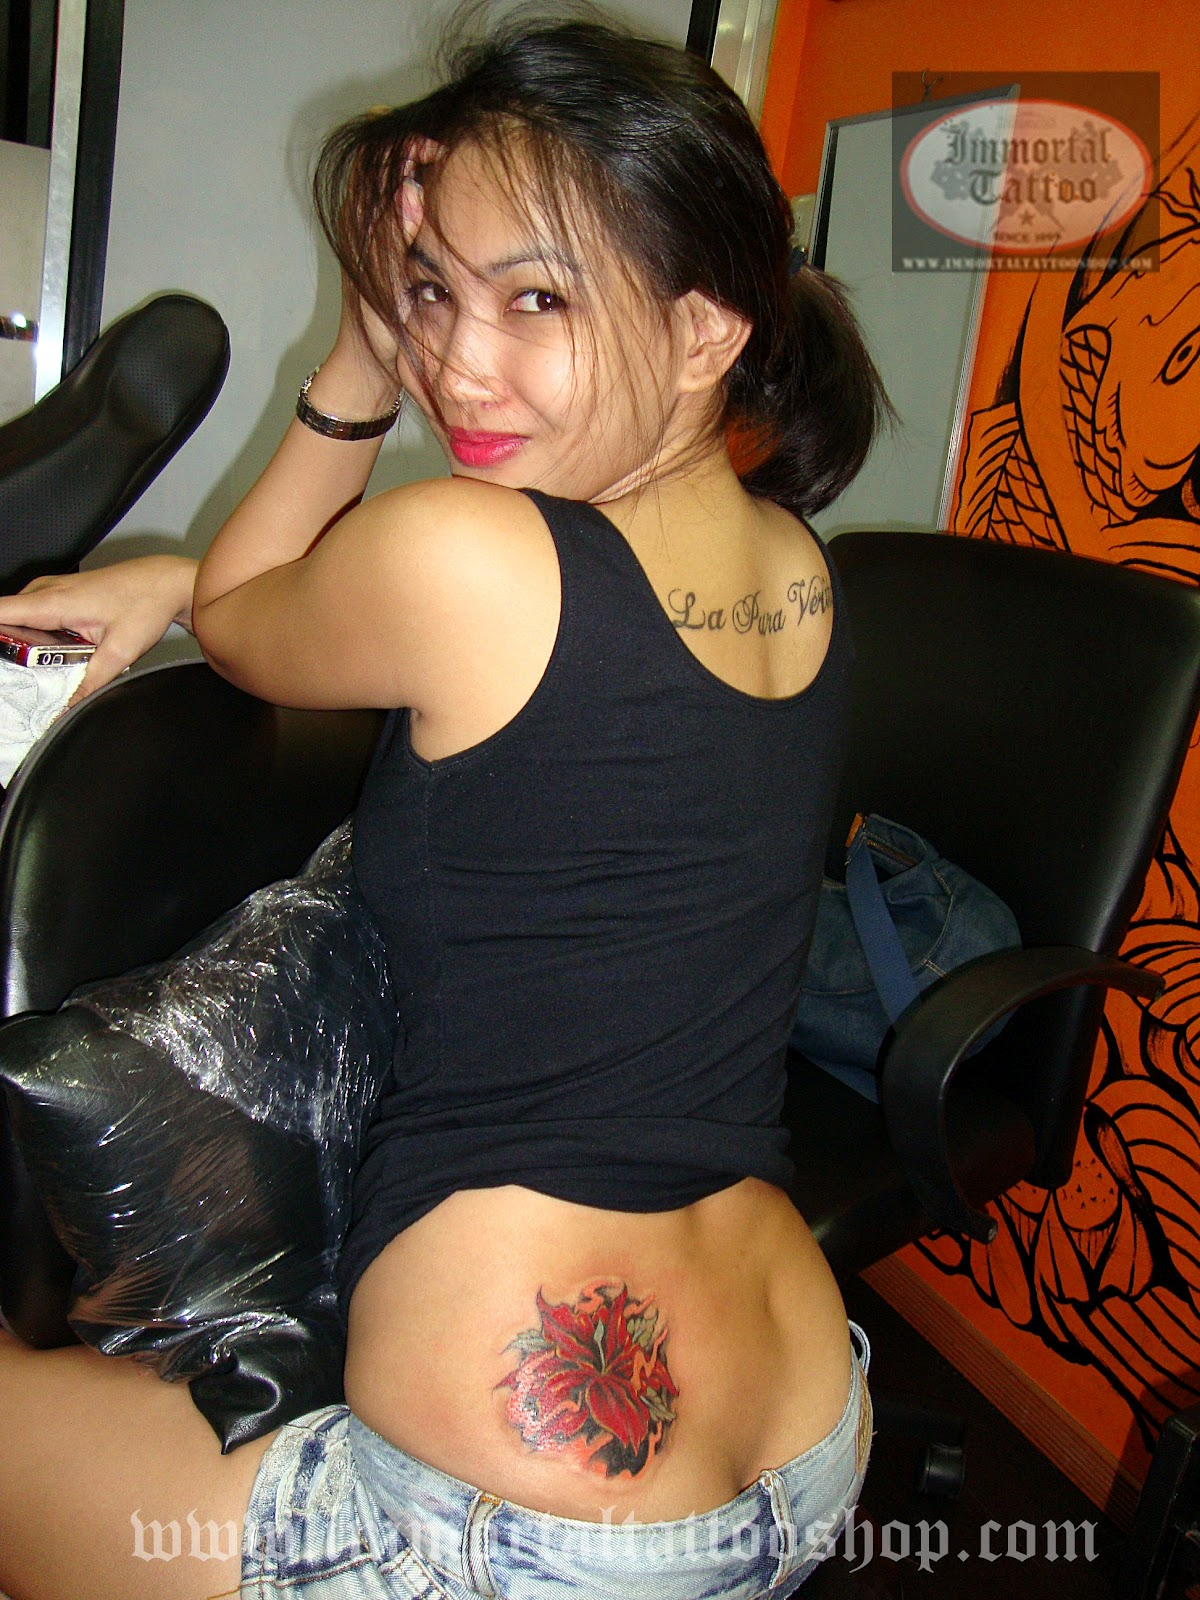 Asian girl filipino yahoo strip and finger